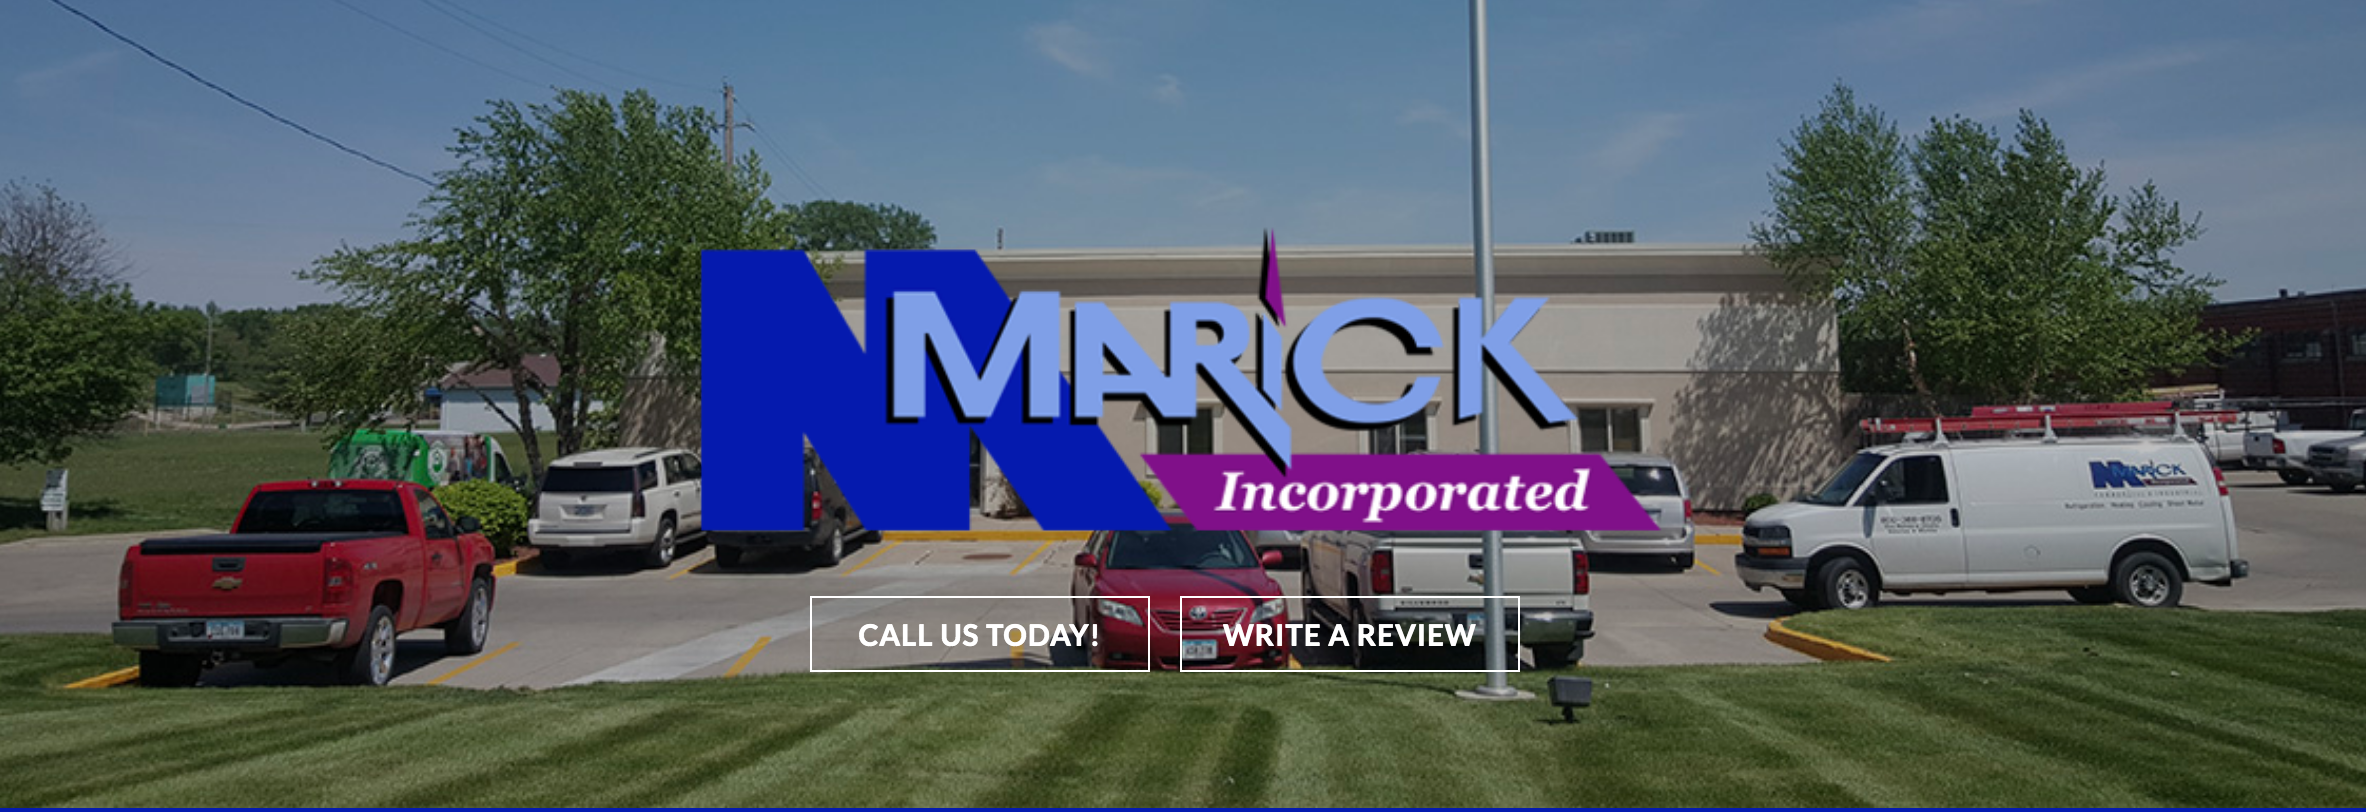 Marick Inc. reviews | Industrial Equipment Supplier at 138 Jefferson Ave - Des Moines IA